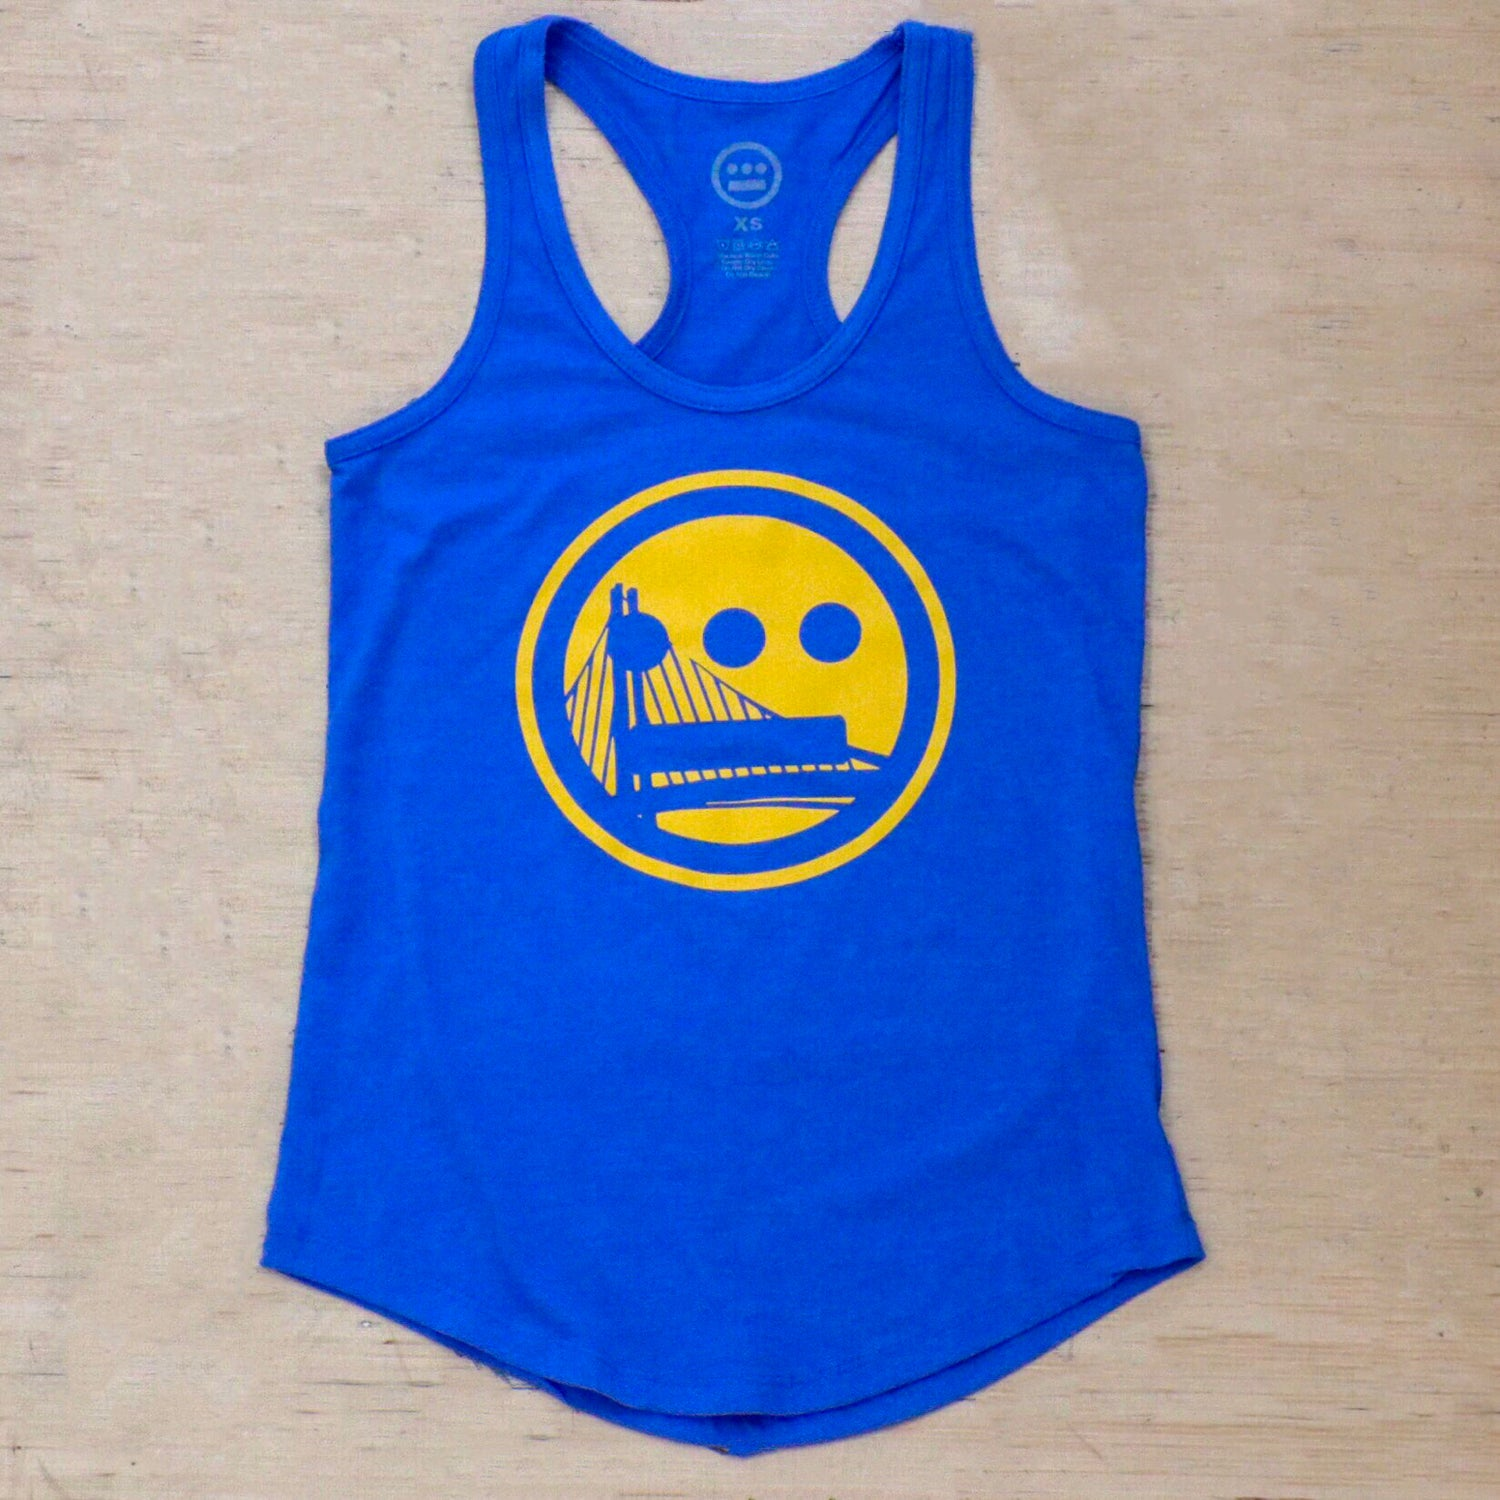 Image of Hieroglyphics Champion Series Women's Racer Back, Royal/ Gold